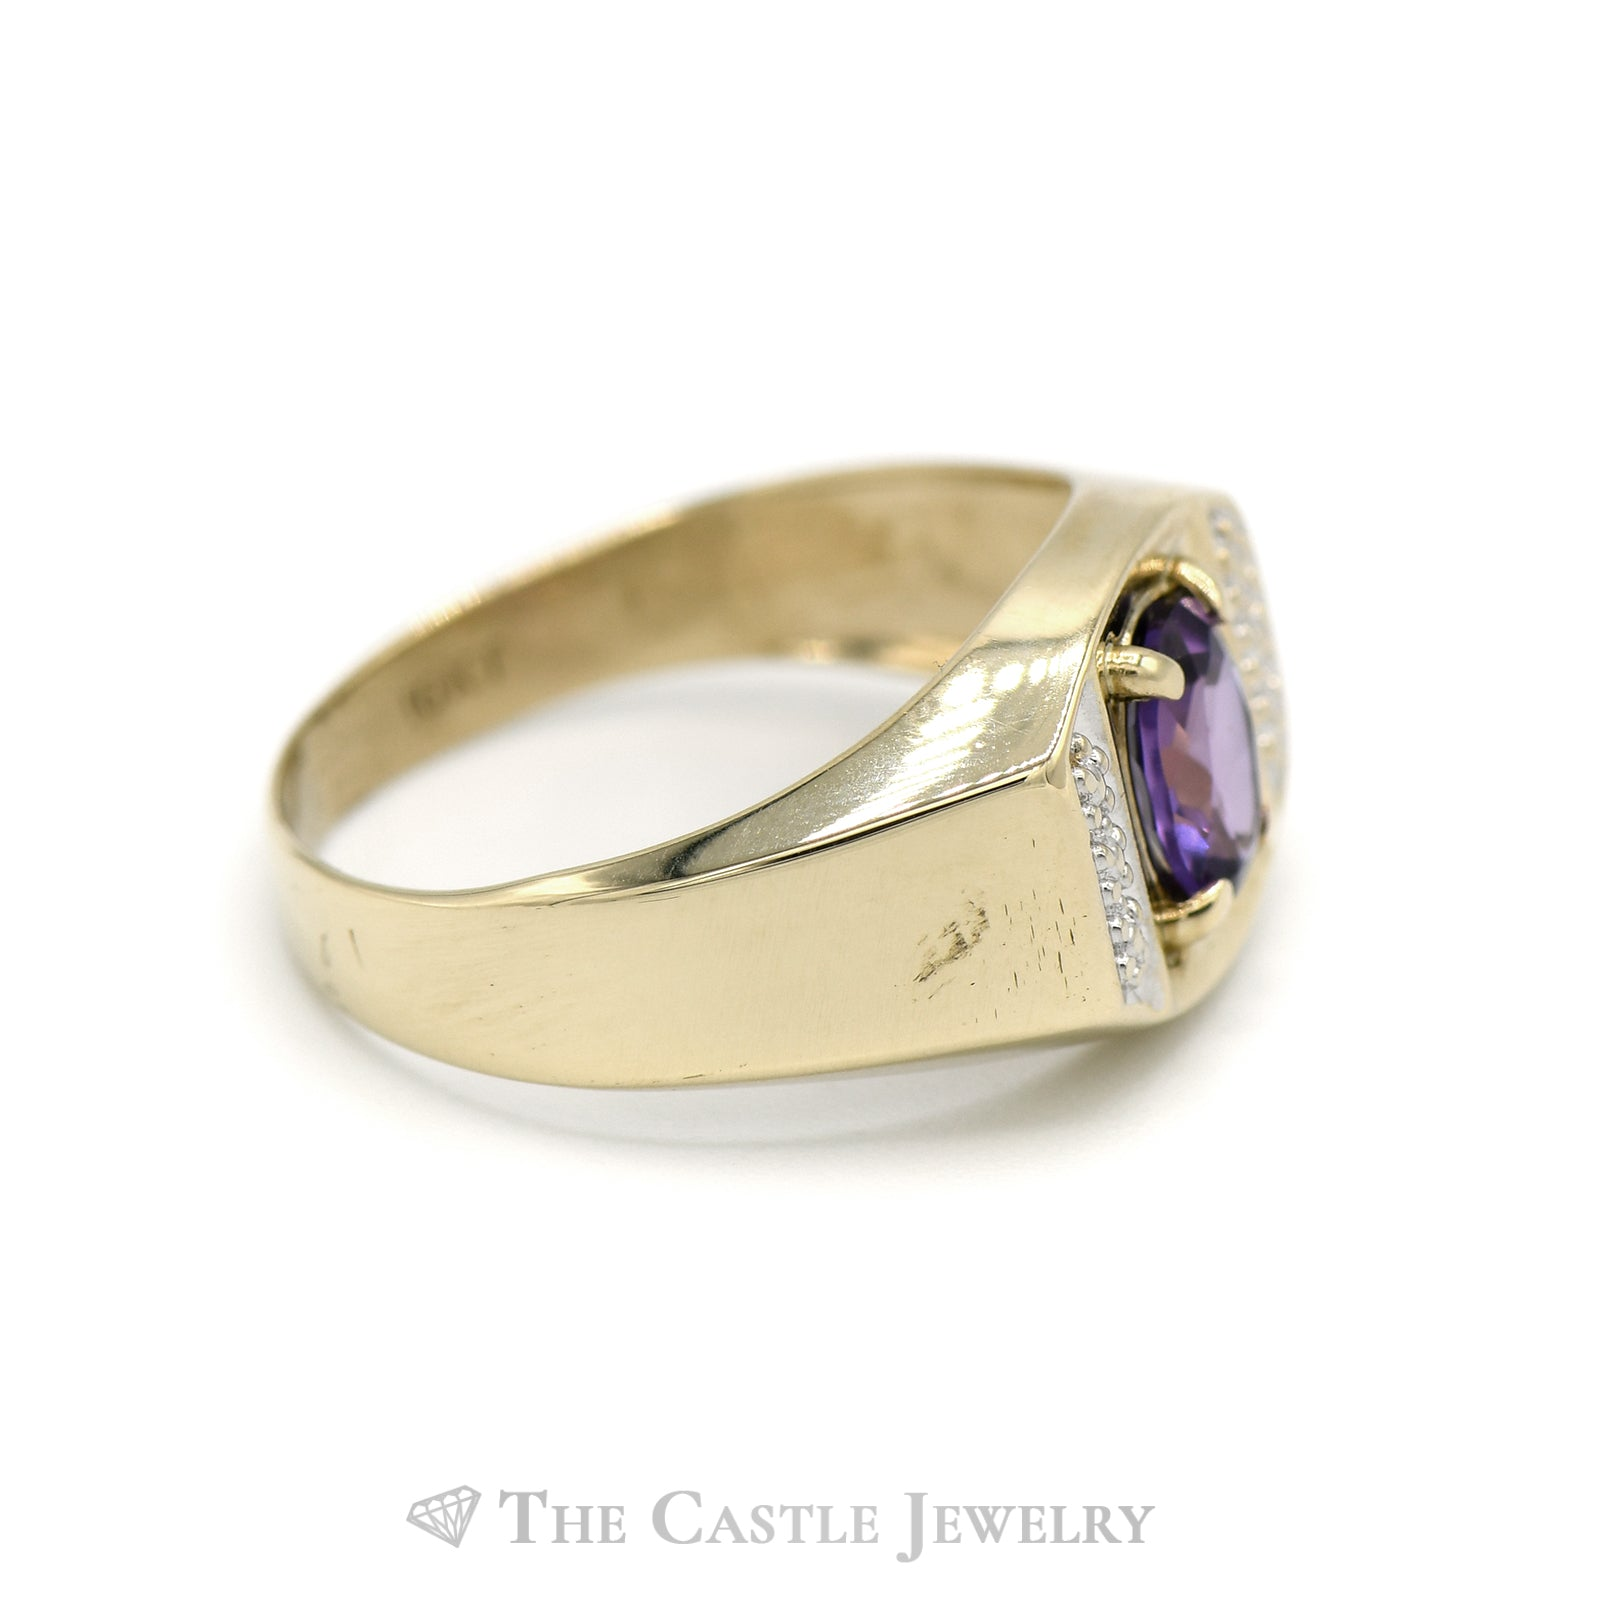 Men's Oval Cut Amethyst Ring in 10KT Yellow Gold-2